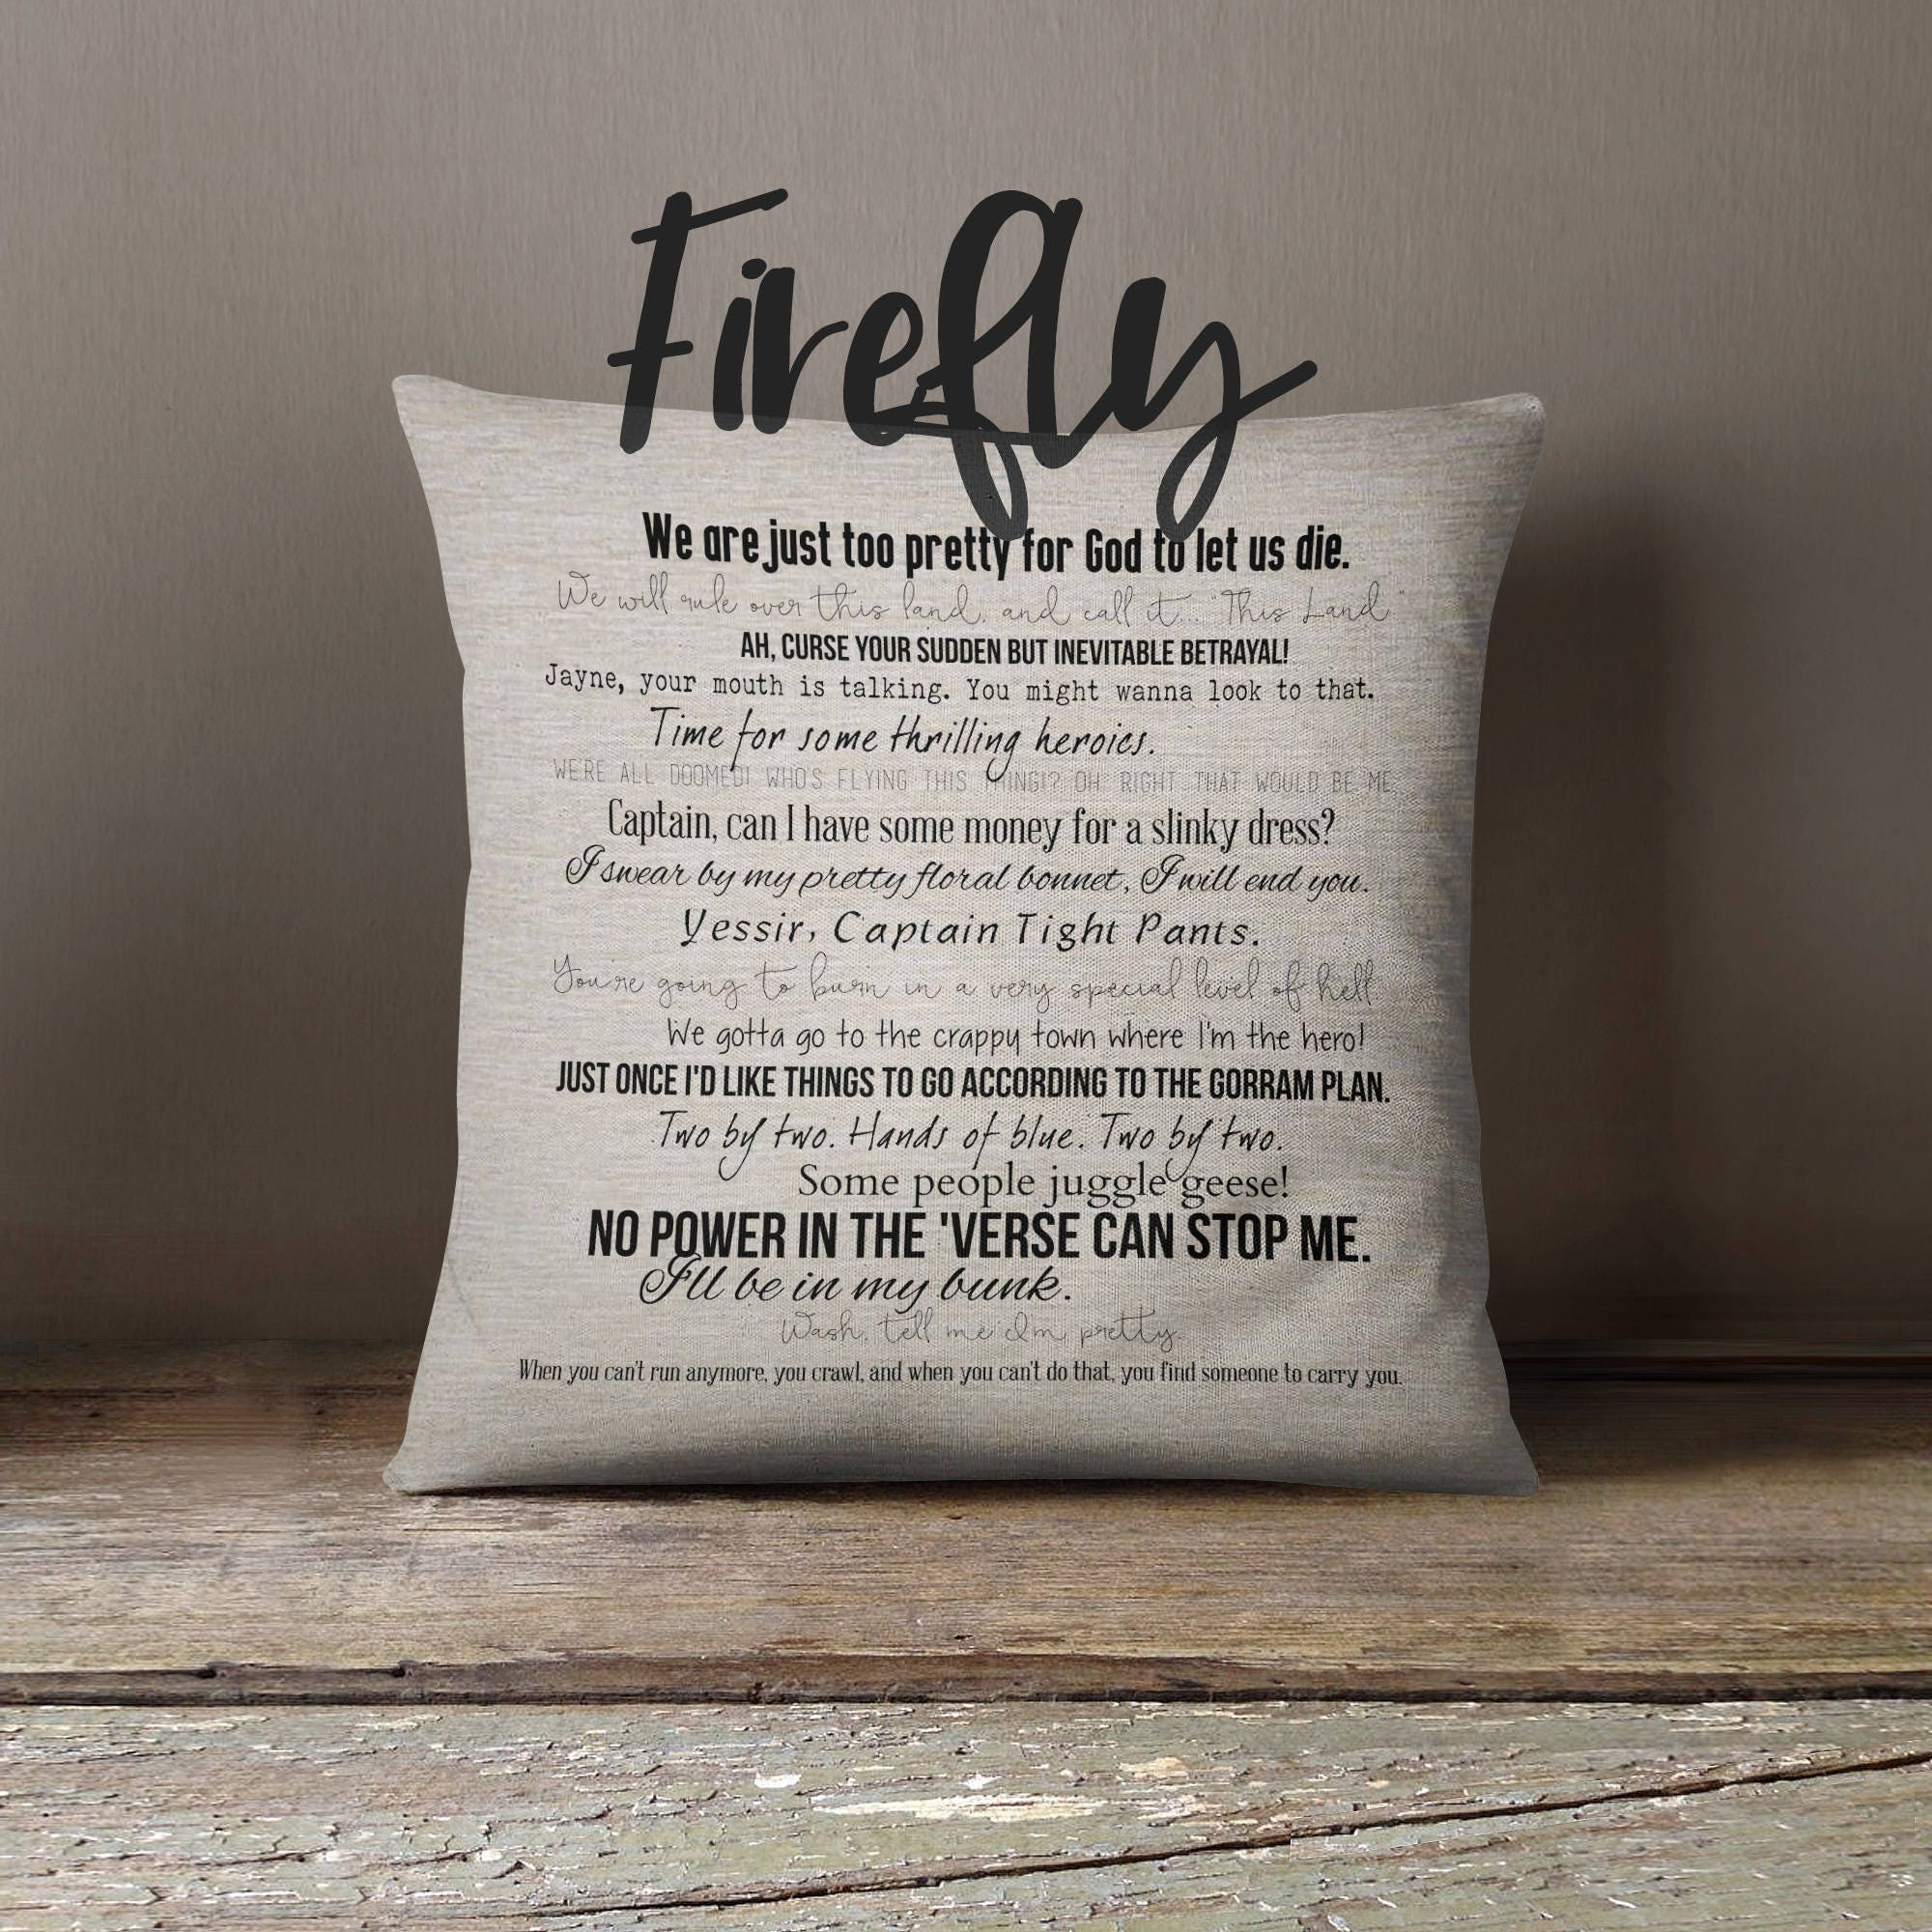 Serenity Movie Quotes: Firefly TV Quote Pillow Cover 18x18inch Movie Quotes